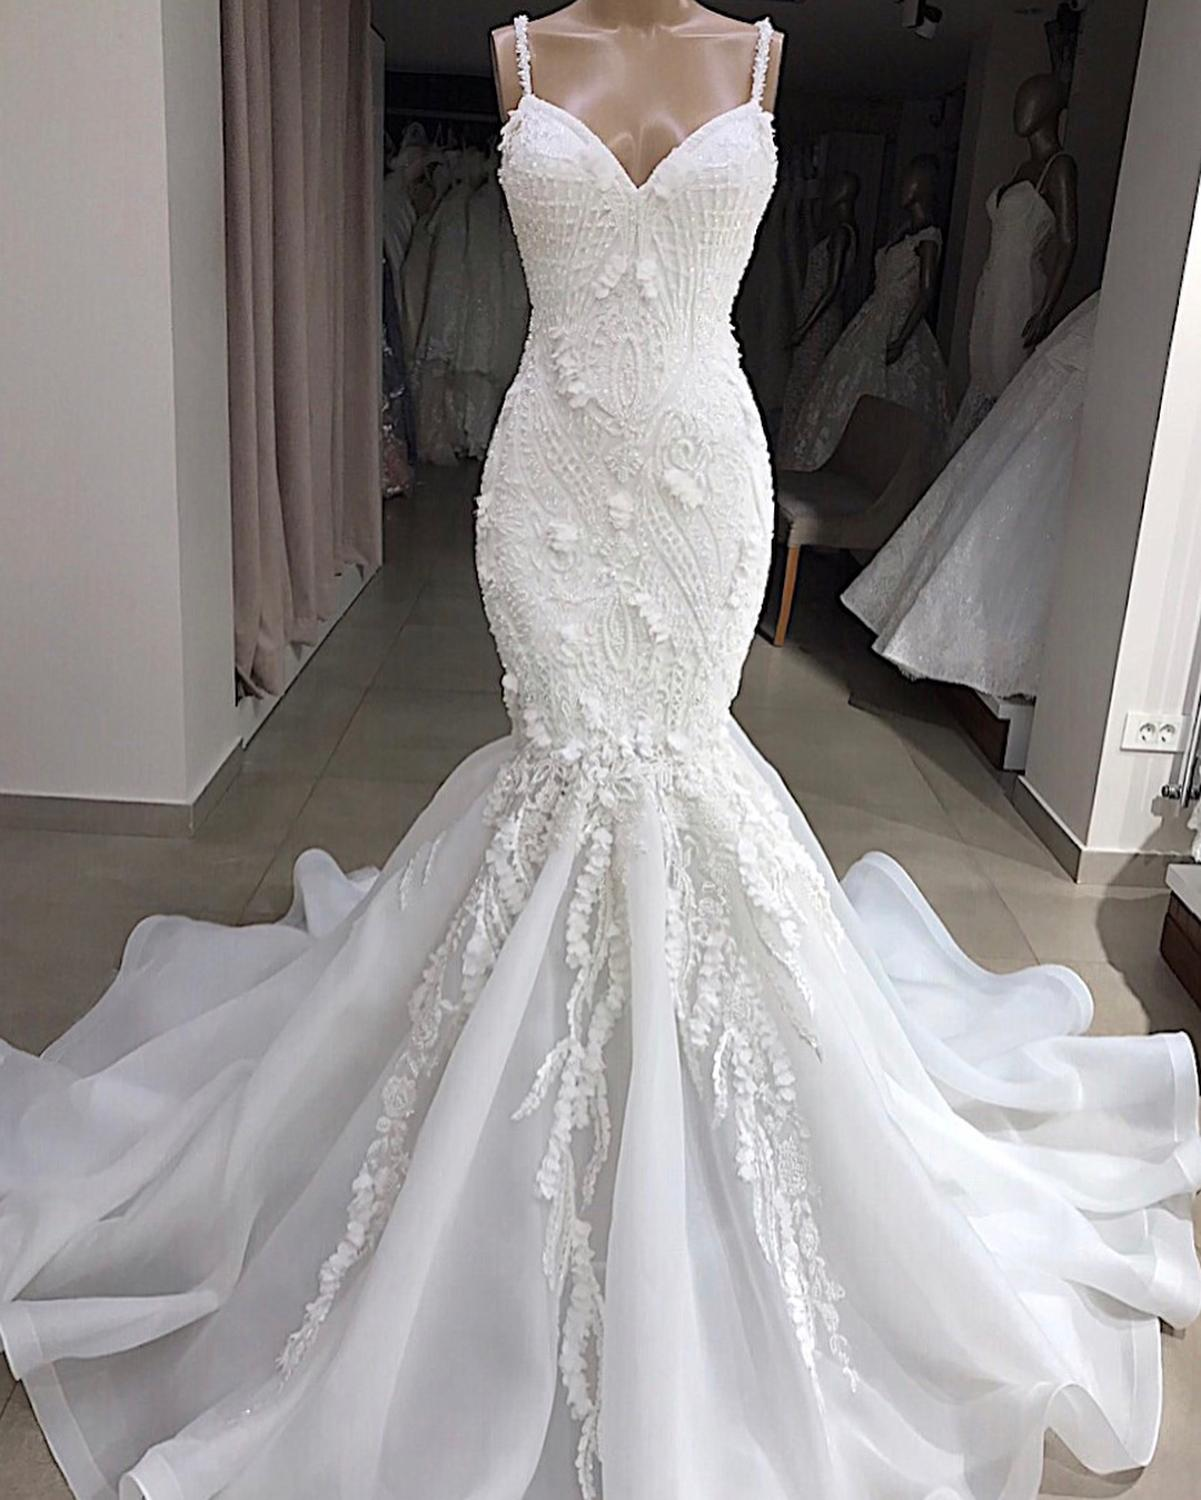 Vestido Sereia Sevy Spaghetti Strap Mermaid Wedding Gowns 2019 Beading Lace Applique Backless  Sweetheart Neck Dress